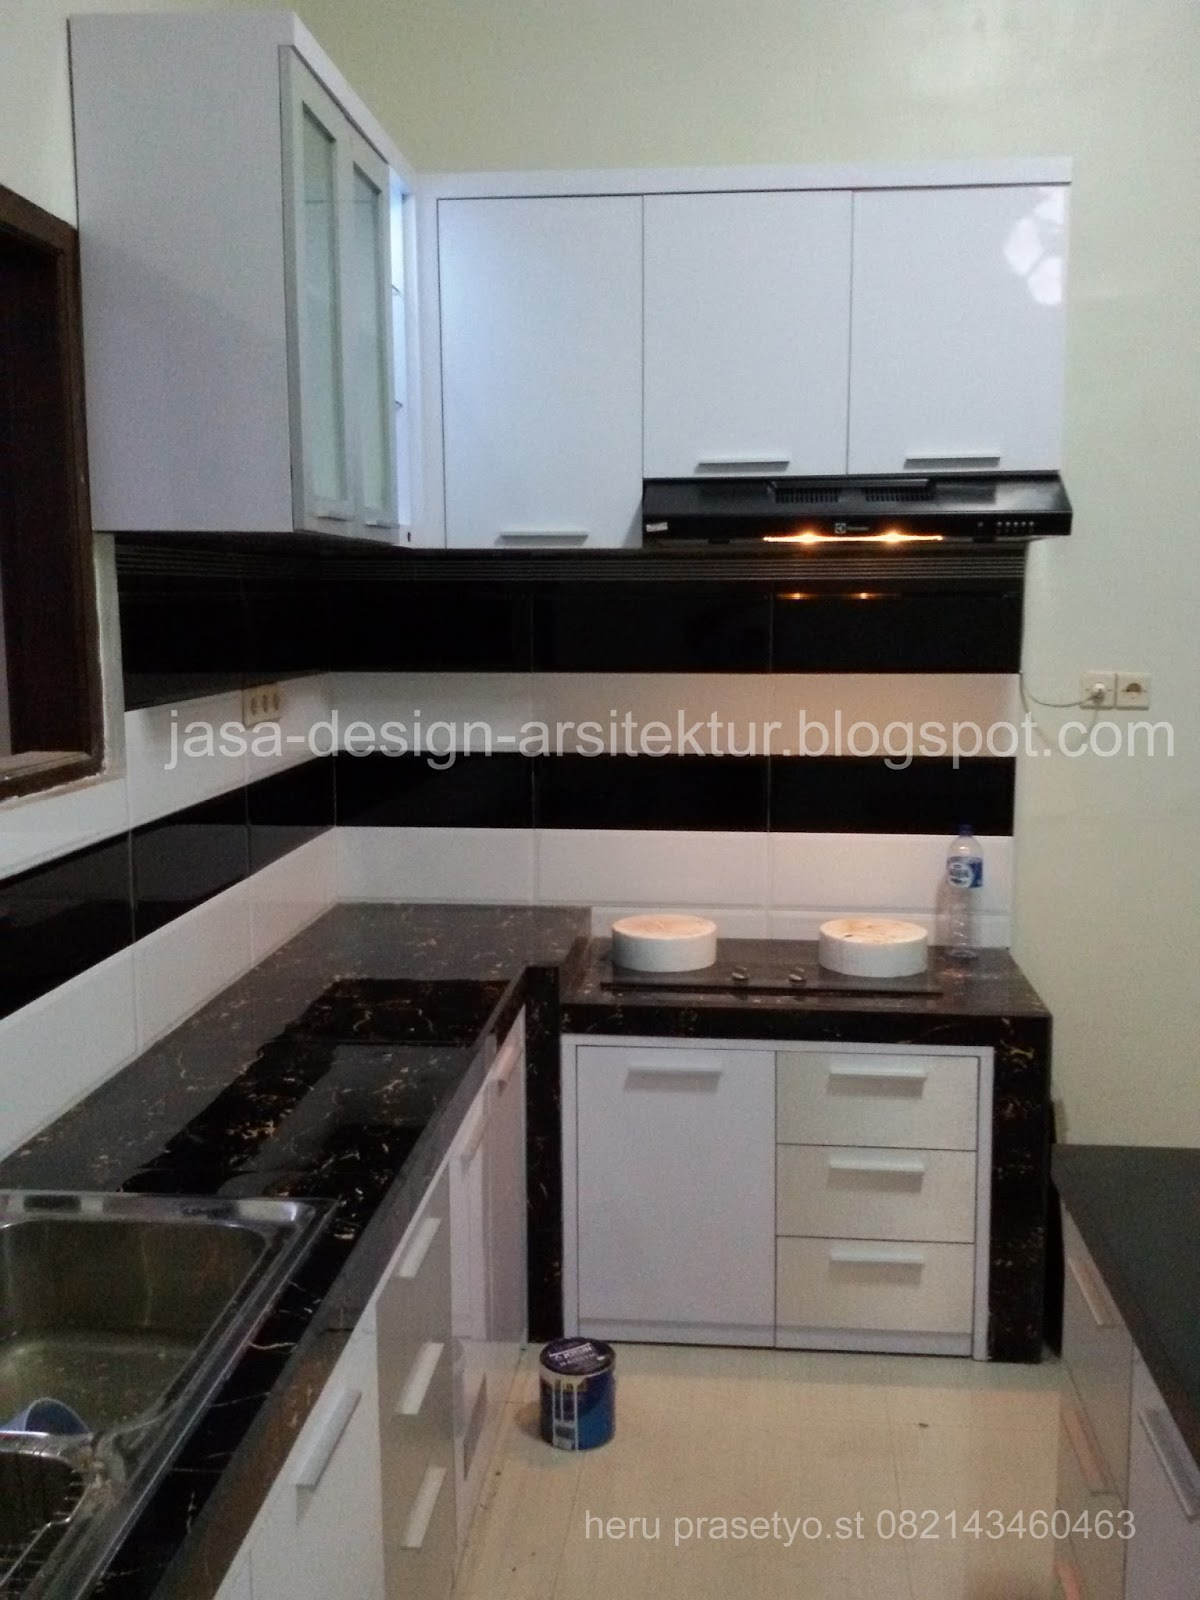 Kontraktor interior surabaya sidoarjo kitchen set warna for Kitchen set hitam